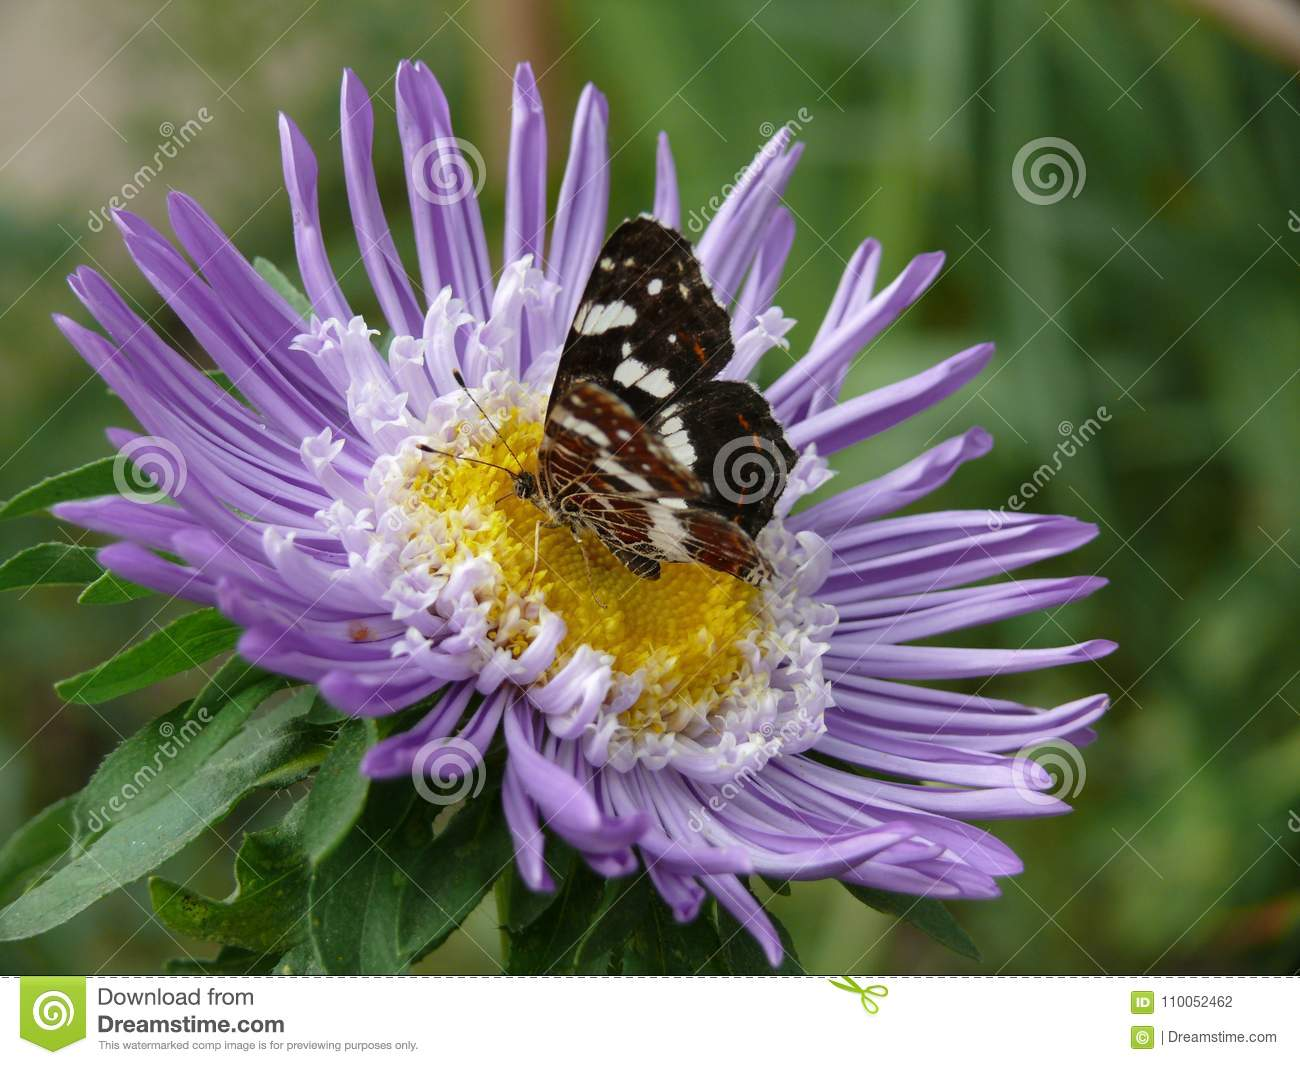 hight resolution of i photograph butterfly beautiful flower summer very purple inside yellow has petals sits macro lot greenery